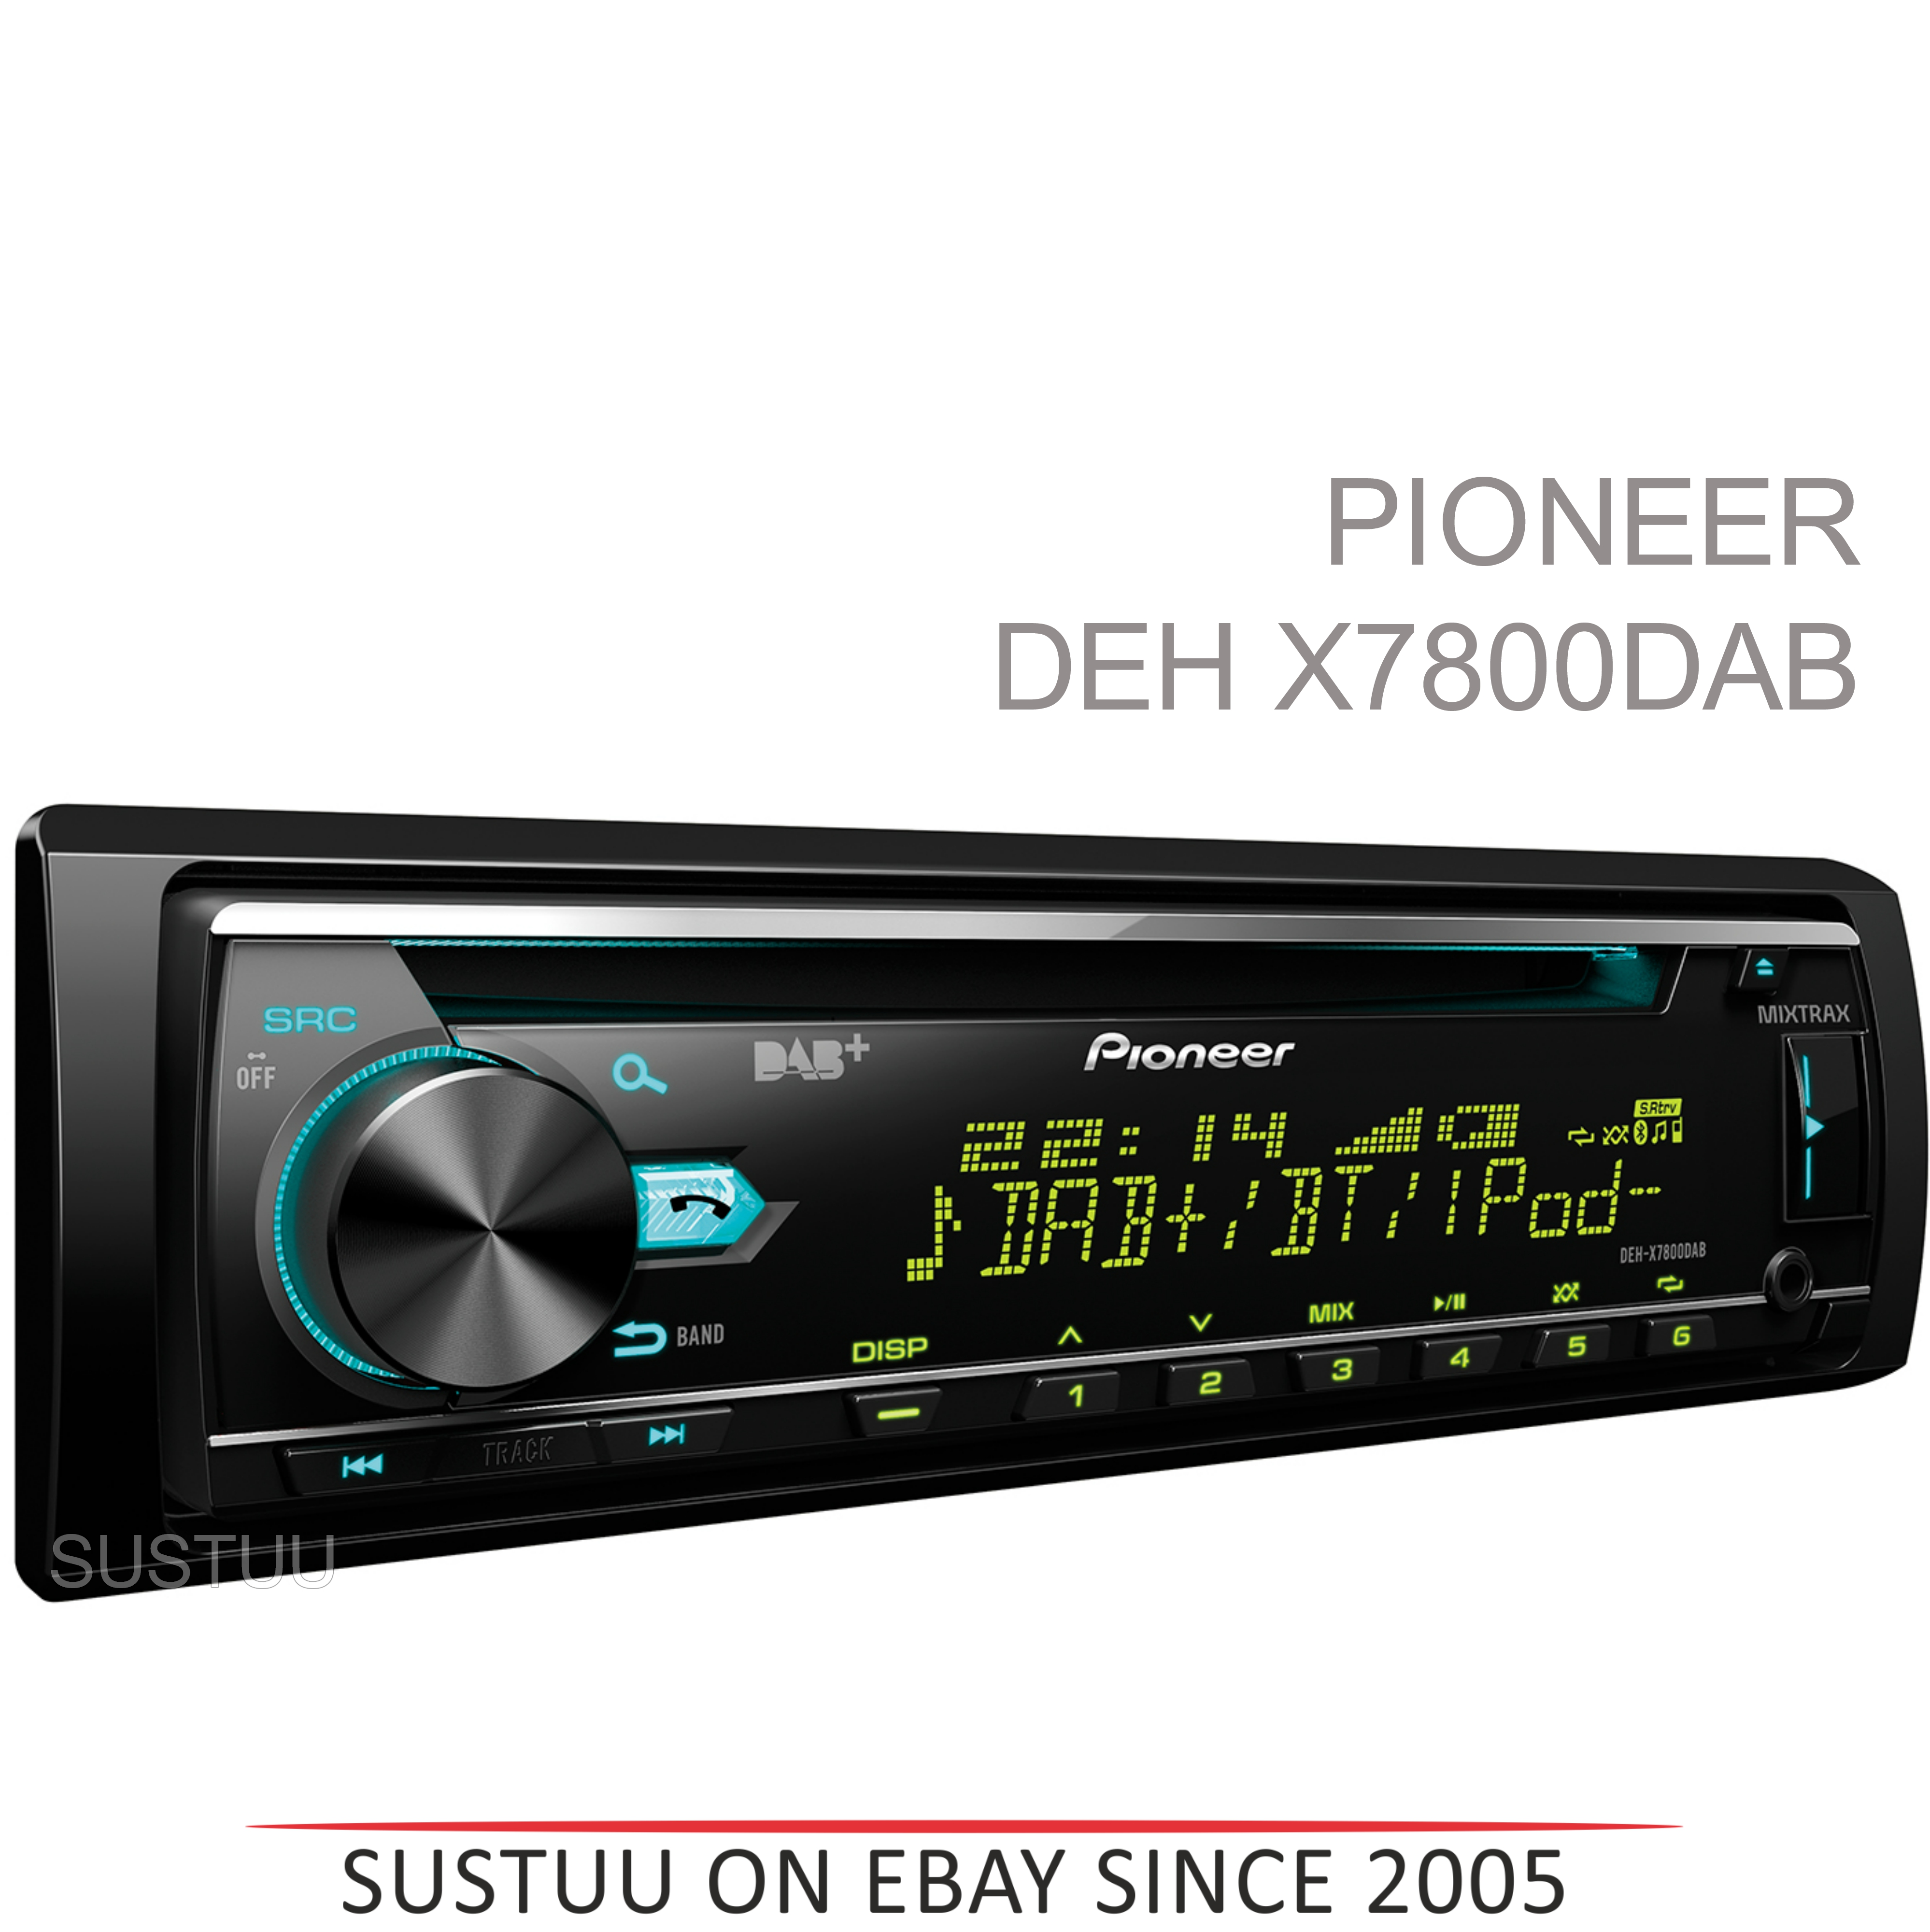 Pioneer DEH X7800DAB Car Stereo|DAB Radio|Bluetooth|USB|Aux|iPod-iPhone-Android